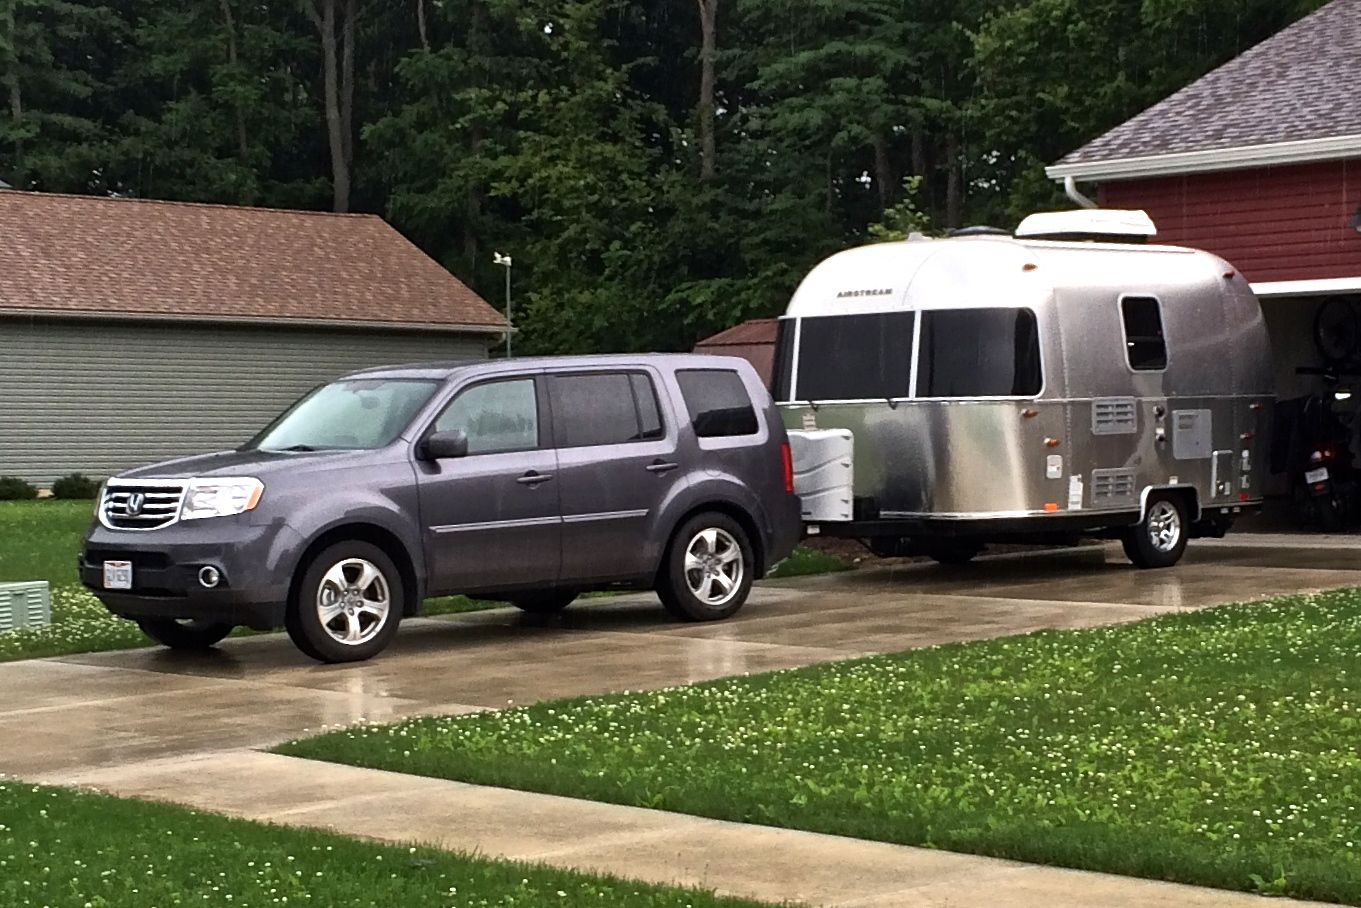 Click image for larger version  Name:airstream.jpg Views:130 Size:233.0 KB ID:243898